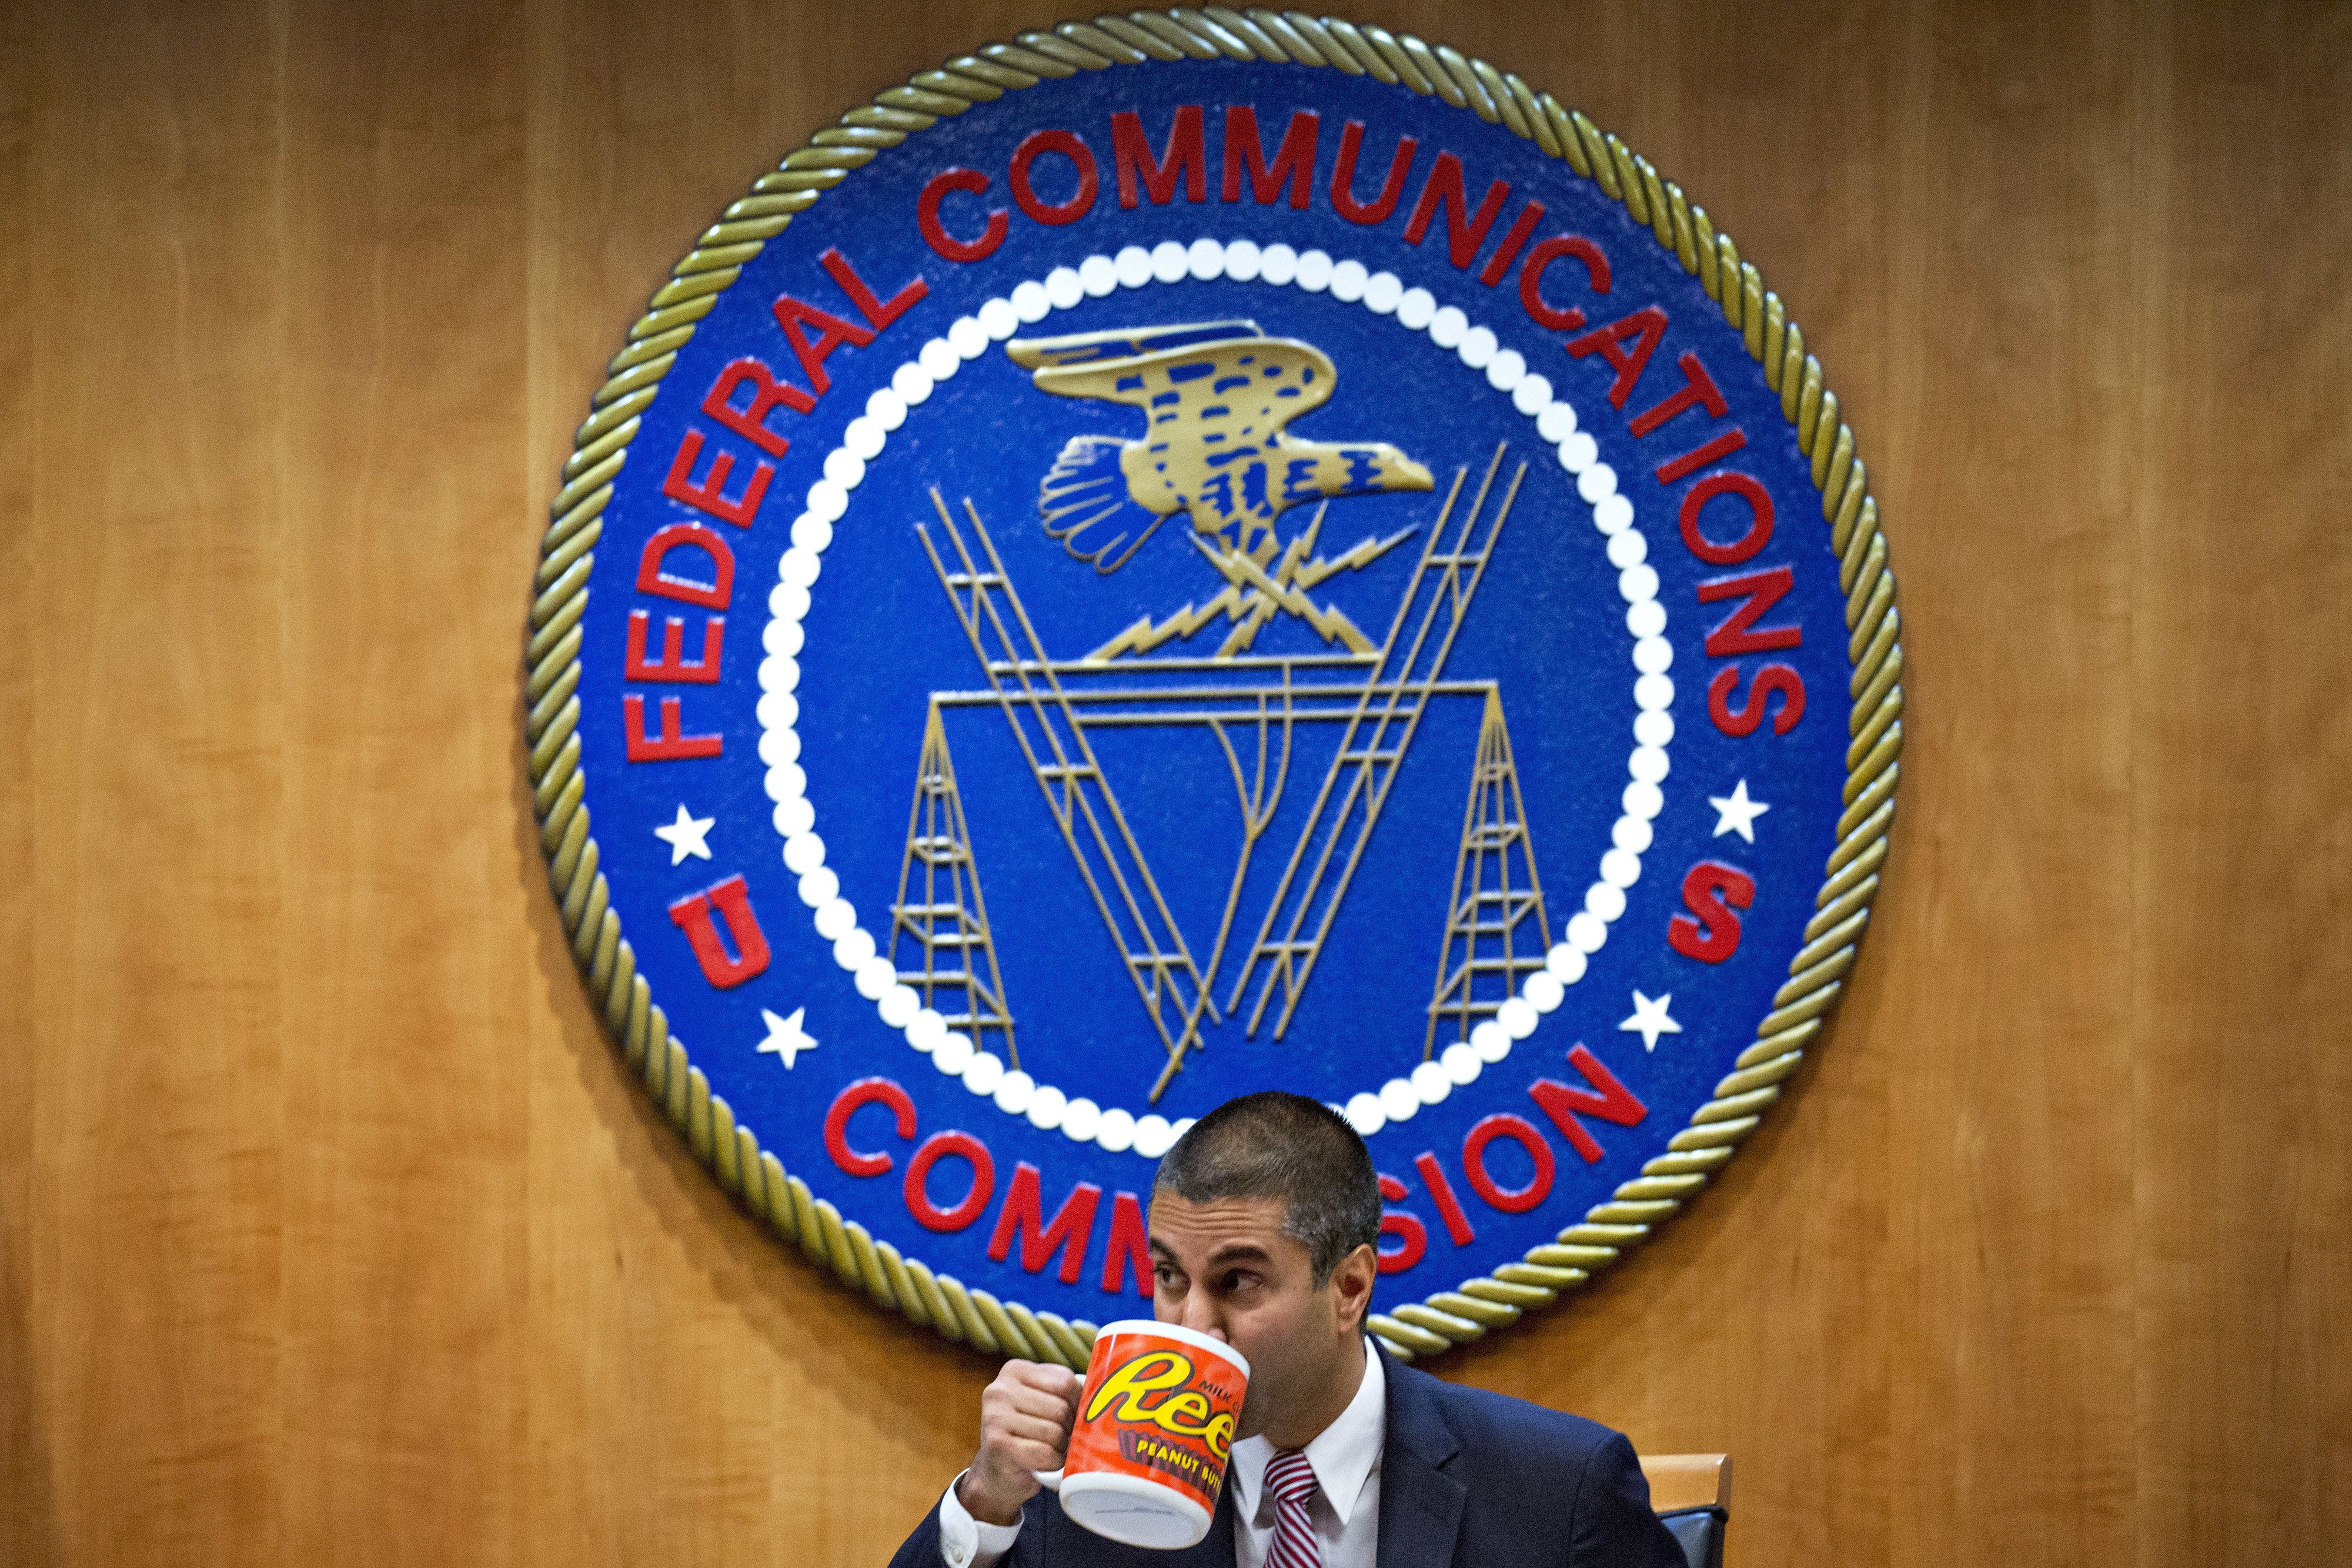 Ajit Pai, chairman of the Federal Communications Commission (FCC), drinks from an oversized coffee mug during an open commission meeting in Washington, D.C., U.S., on Thursday, Dec. 14, 2017. The FCC is slated to vote to roll back a 2015 utility-style classification of broadband and a raft of related net neutrality rules, including bans on broadband providers blocking and slowing lawful internet traffic on its way to consumers. Photographer: Andrew Harrer/Bloomberg via Getty Images